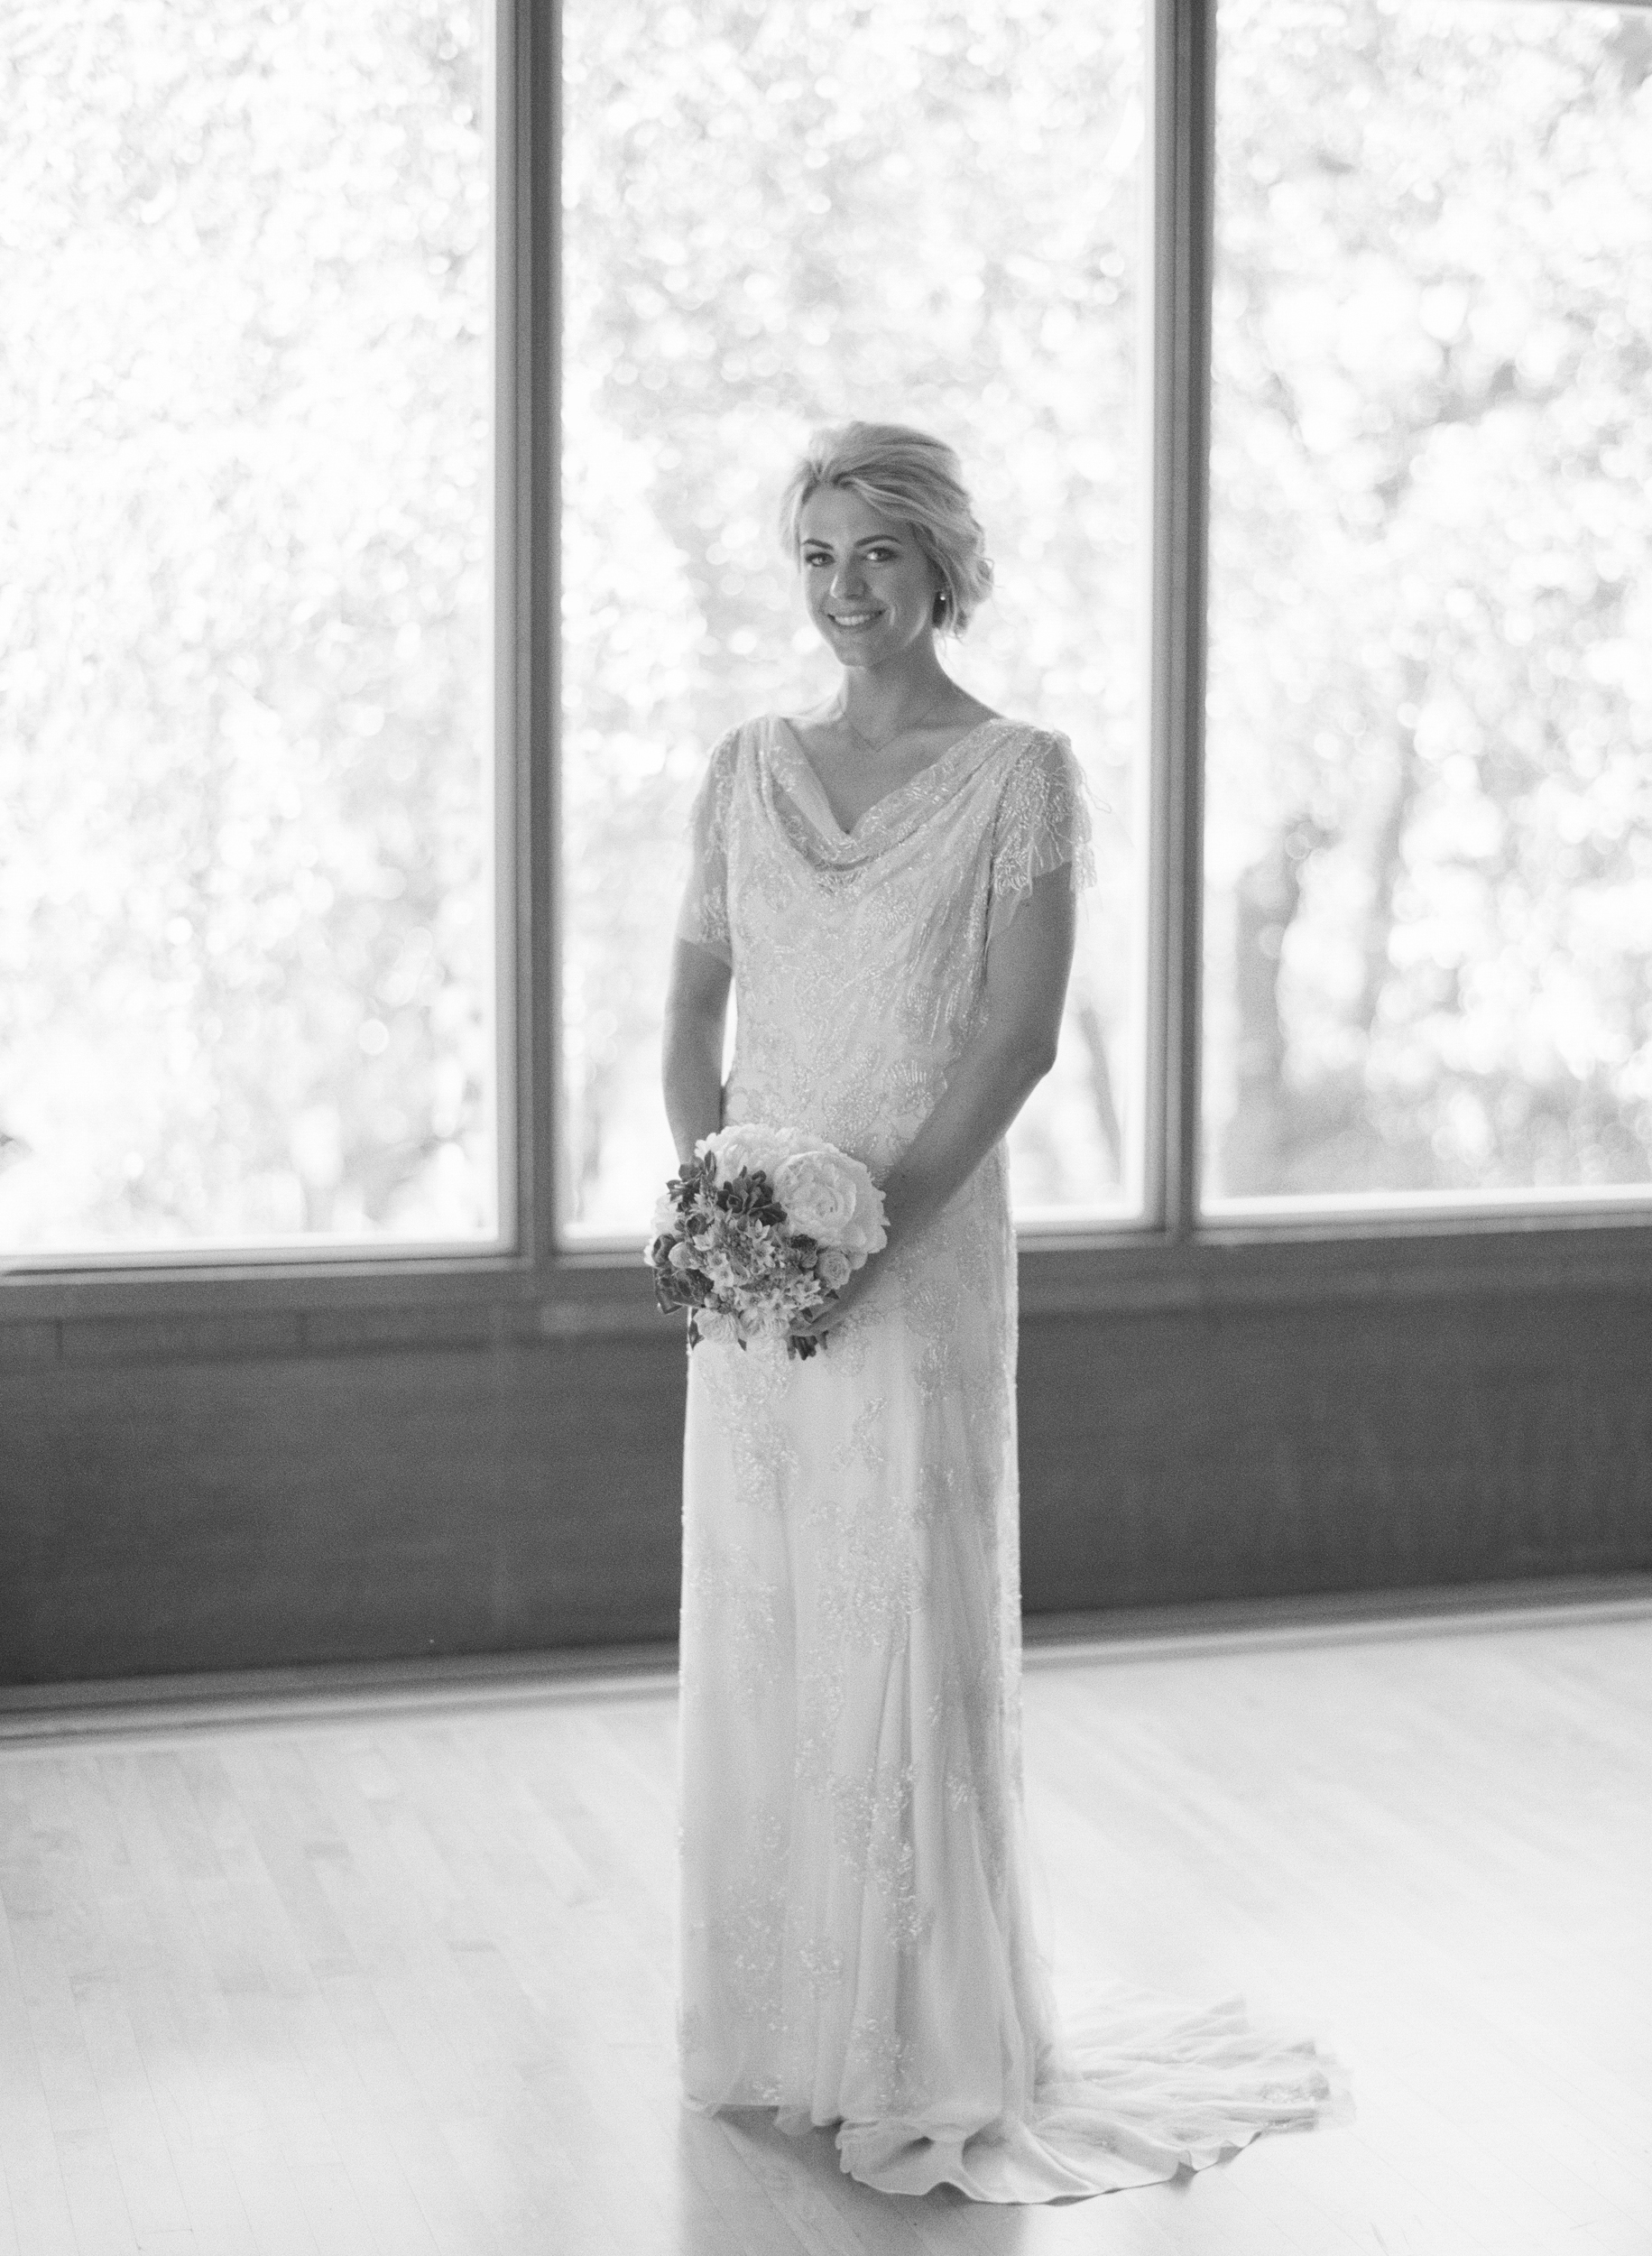 Sylvie-Gil-film-destination-photography-Kunde-winery-Napa-Valley-elegant-shabby-chic-bride-before-ceremony-draped-lace-gown